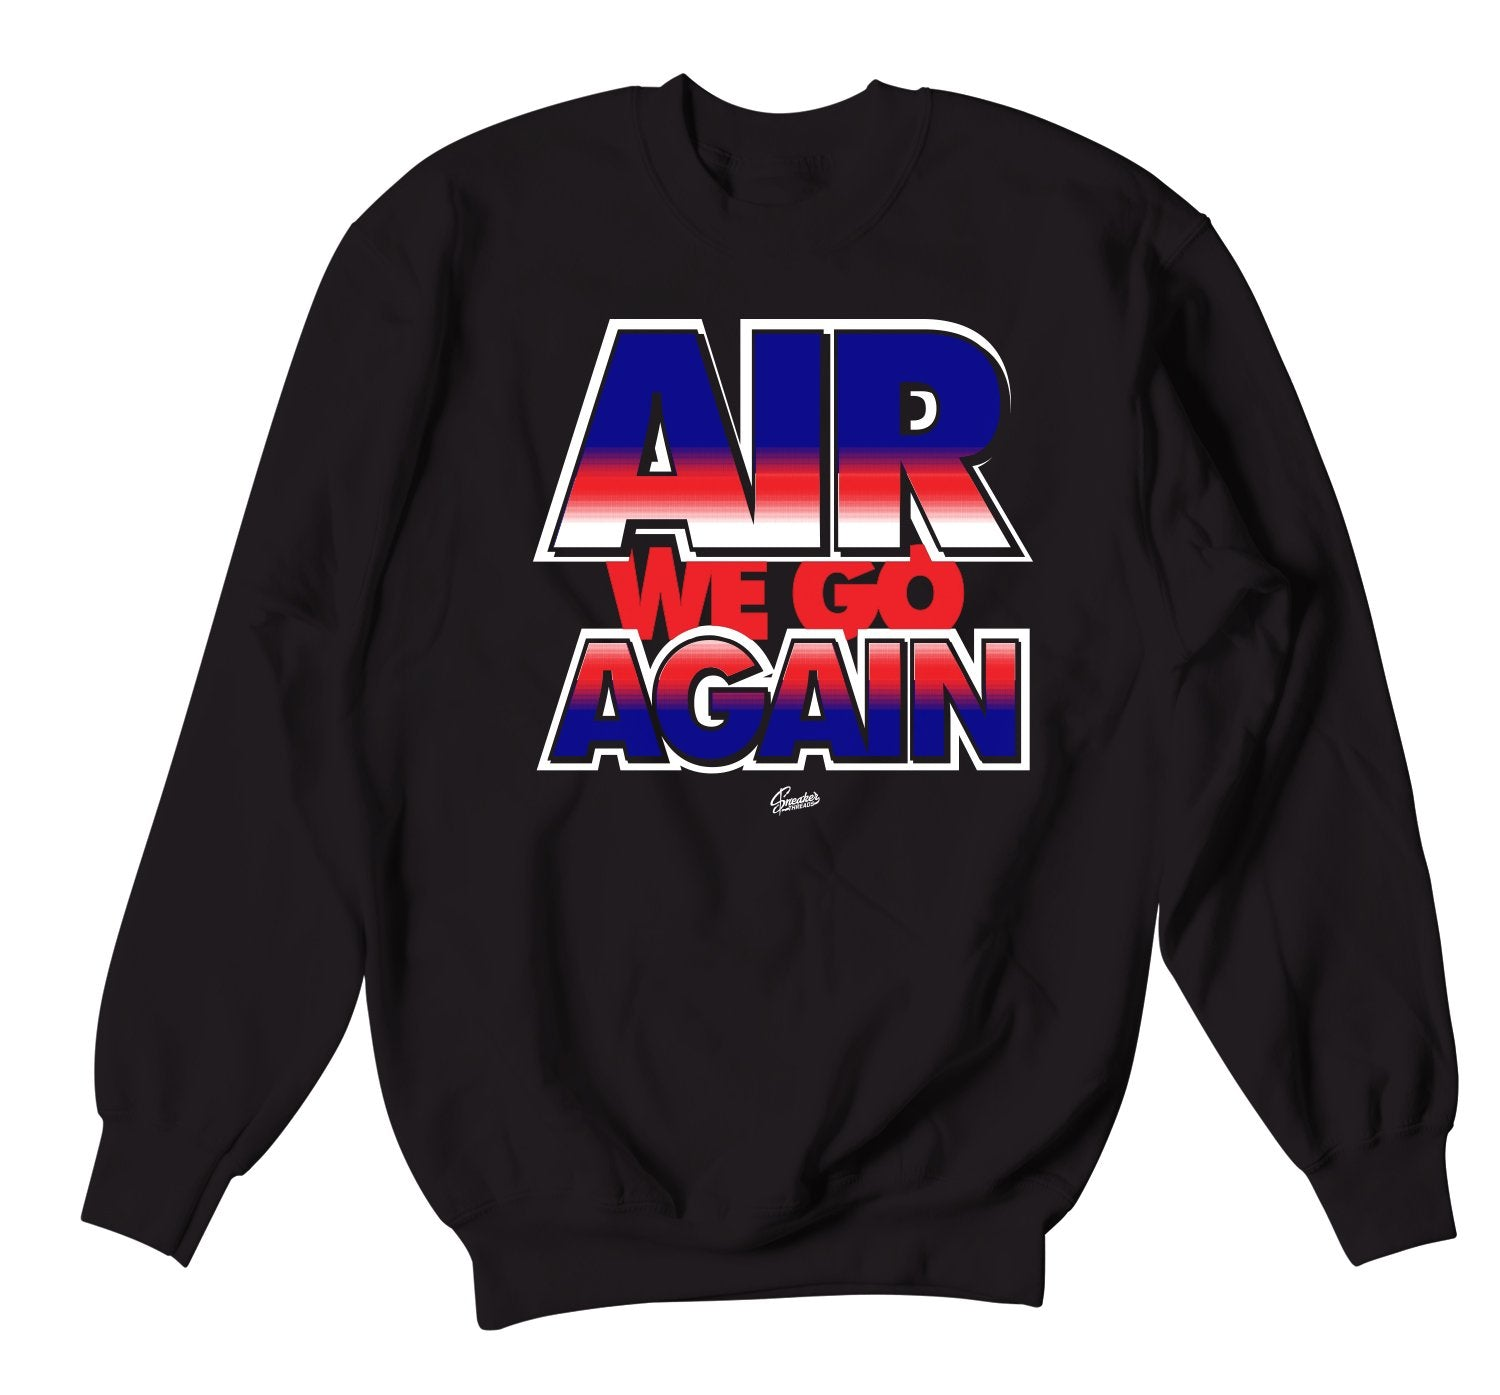 crewneck sweaters designed to match the Jordan 4 loyal blue sneaker collection